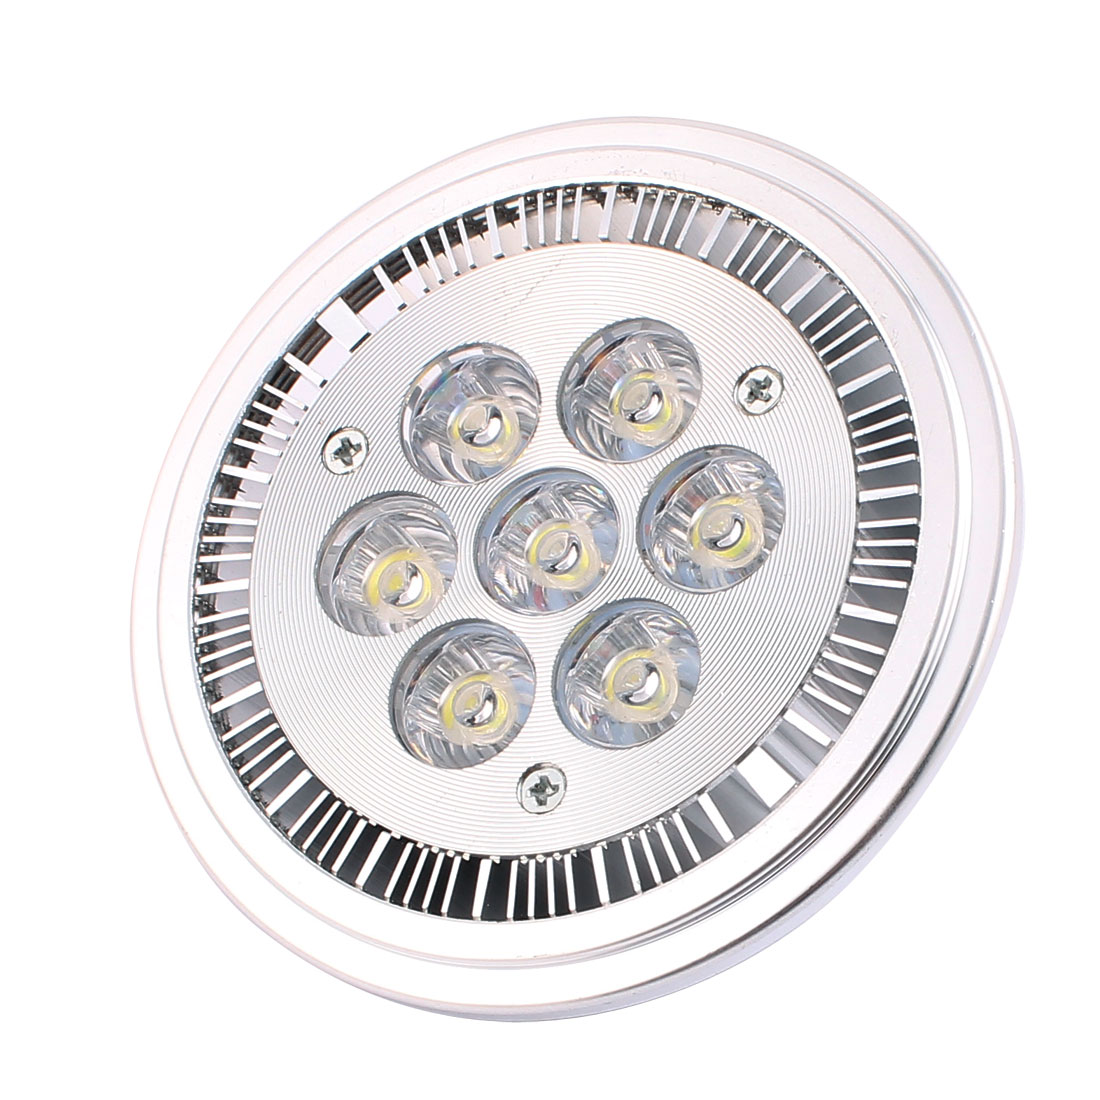 DC 12V 7W AR111 COB G53 LED Ceiling Light Lamp Spotlight Reflector Pure White